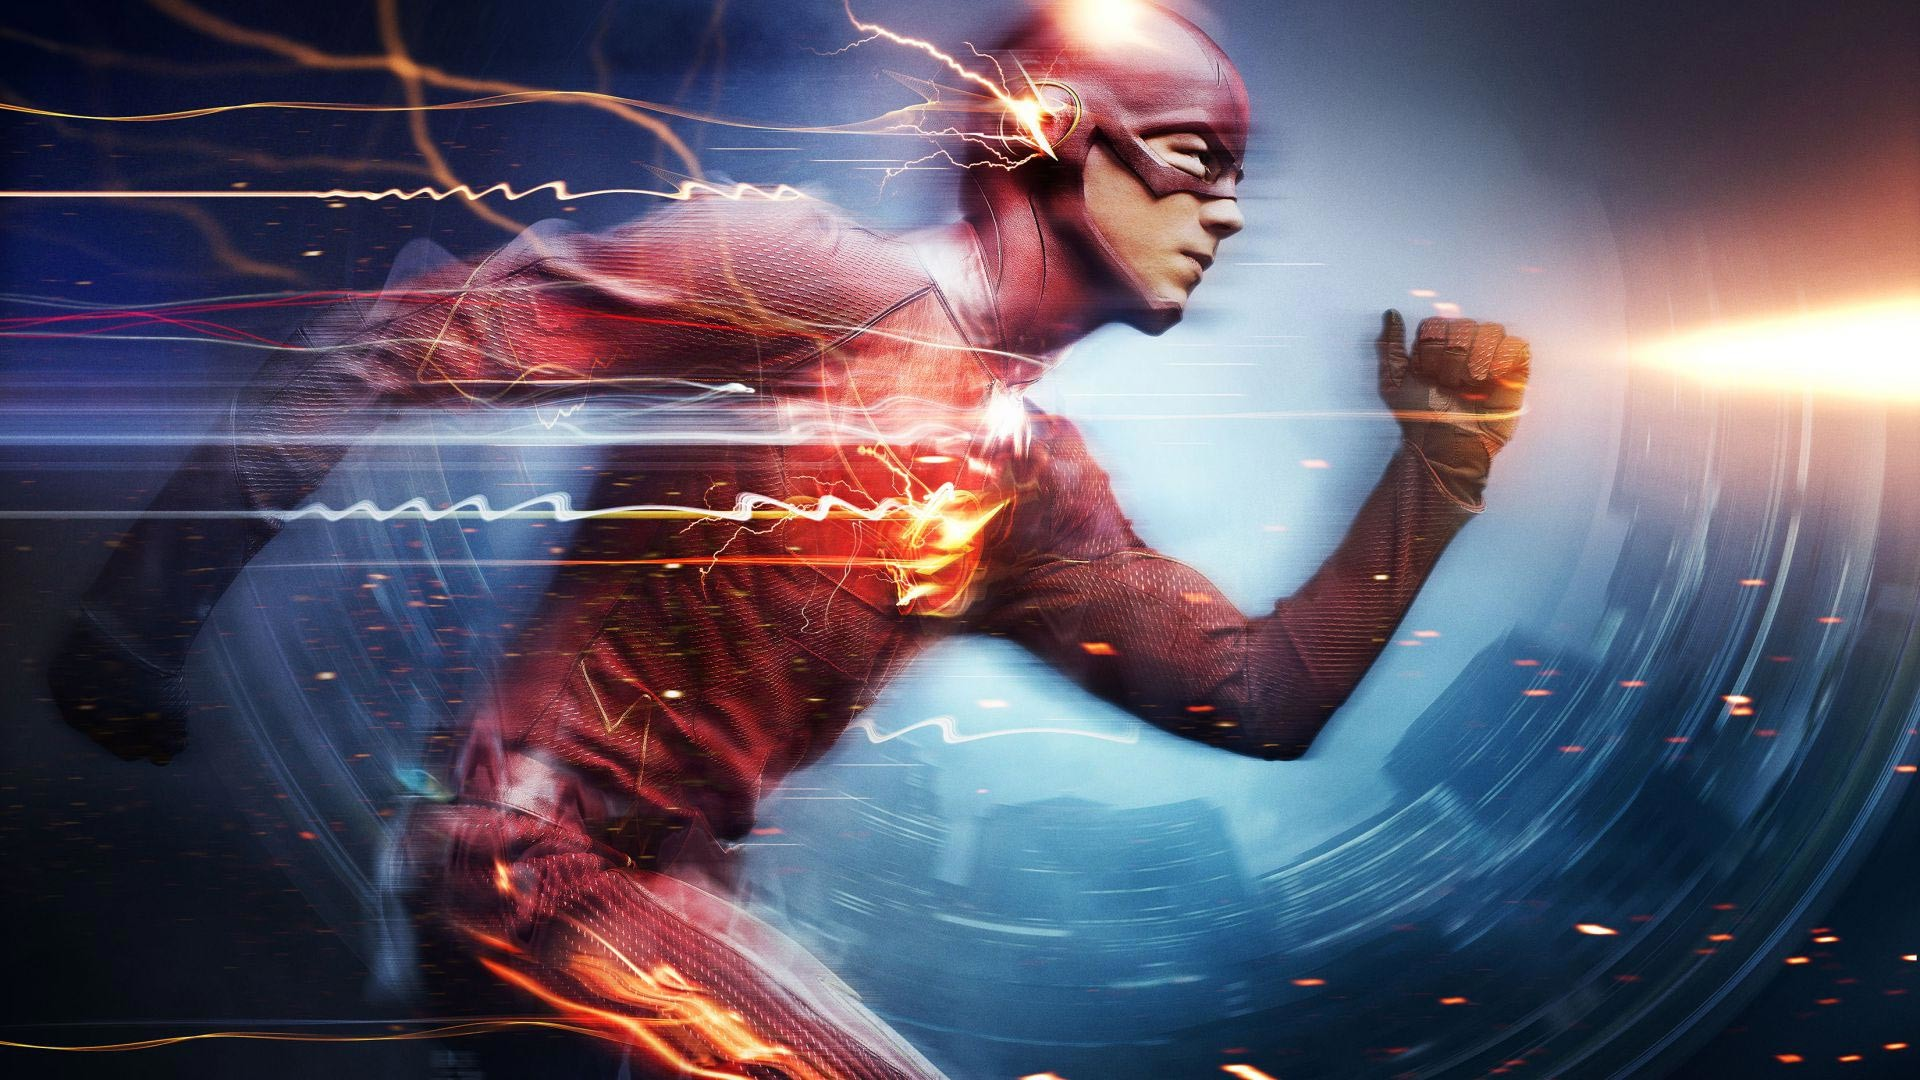 … Barry Allen as The Flash, the fastest man alive, blitzing through the  city using the Speed Force. Also features a cameo from the Reverse Flash,  Zoom.